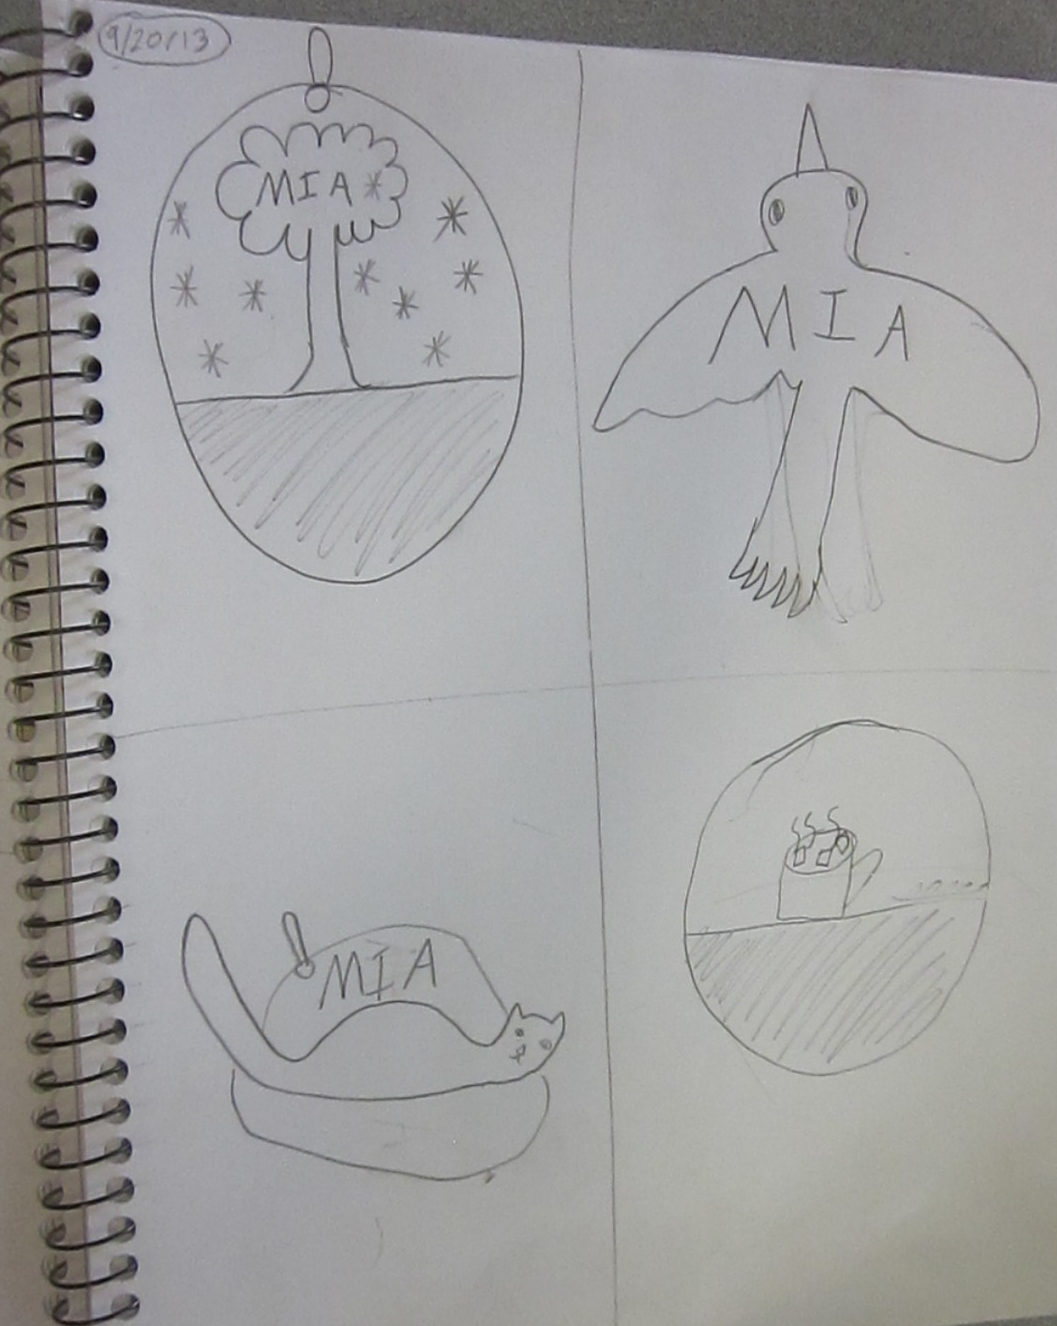 Students were encouraged to do multiple quick sketches in order to capture ideas. Dividing the page into fours and using a timer to encourage production were helpful keys to generating thinking.